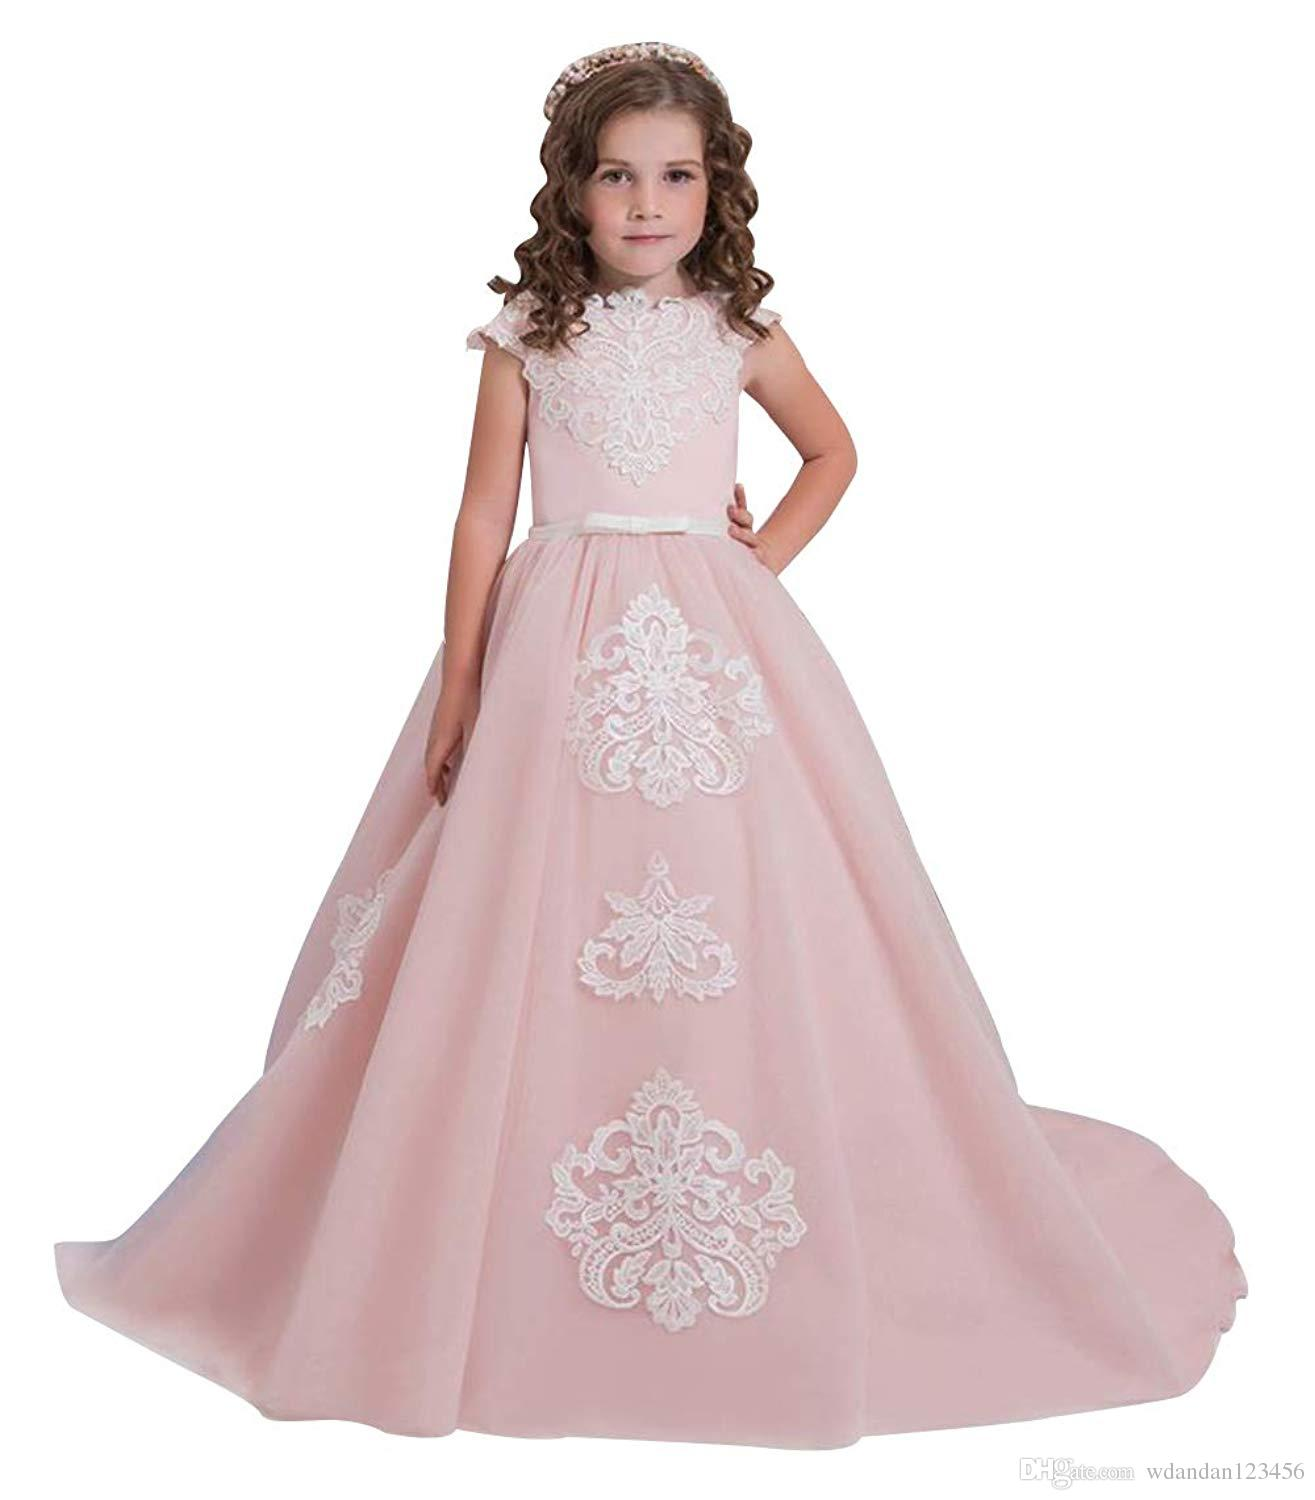 Flower Girls Dress Lace Princess Formal Pageant Wedding Bridesmaid Graduation